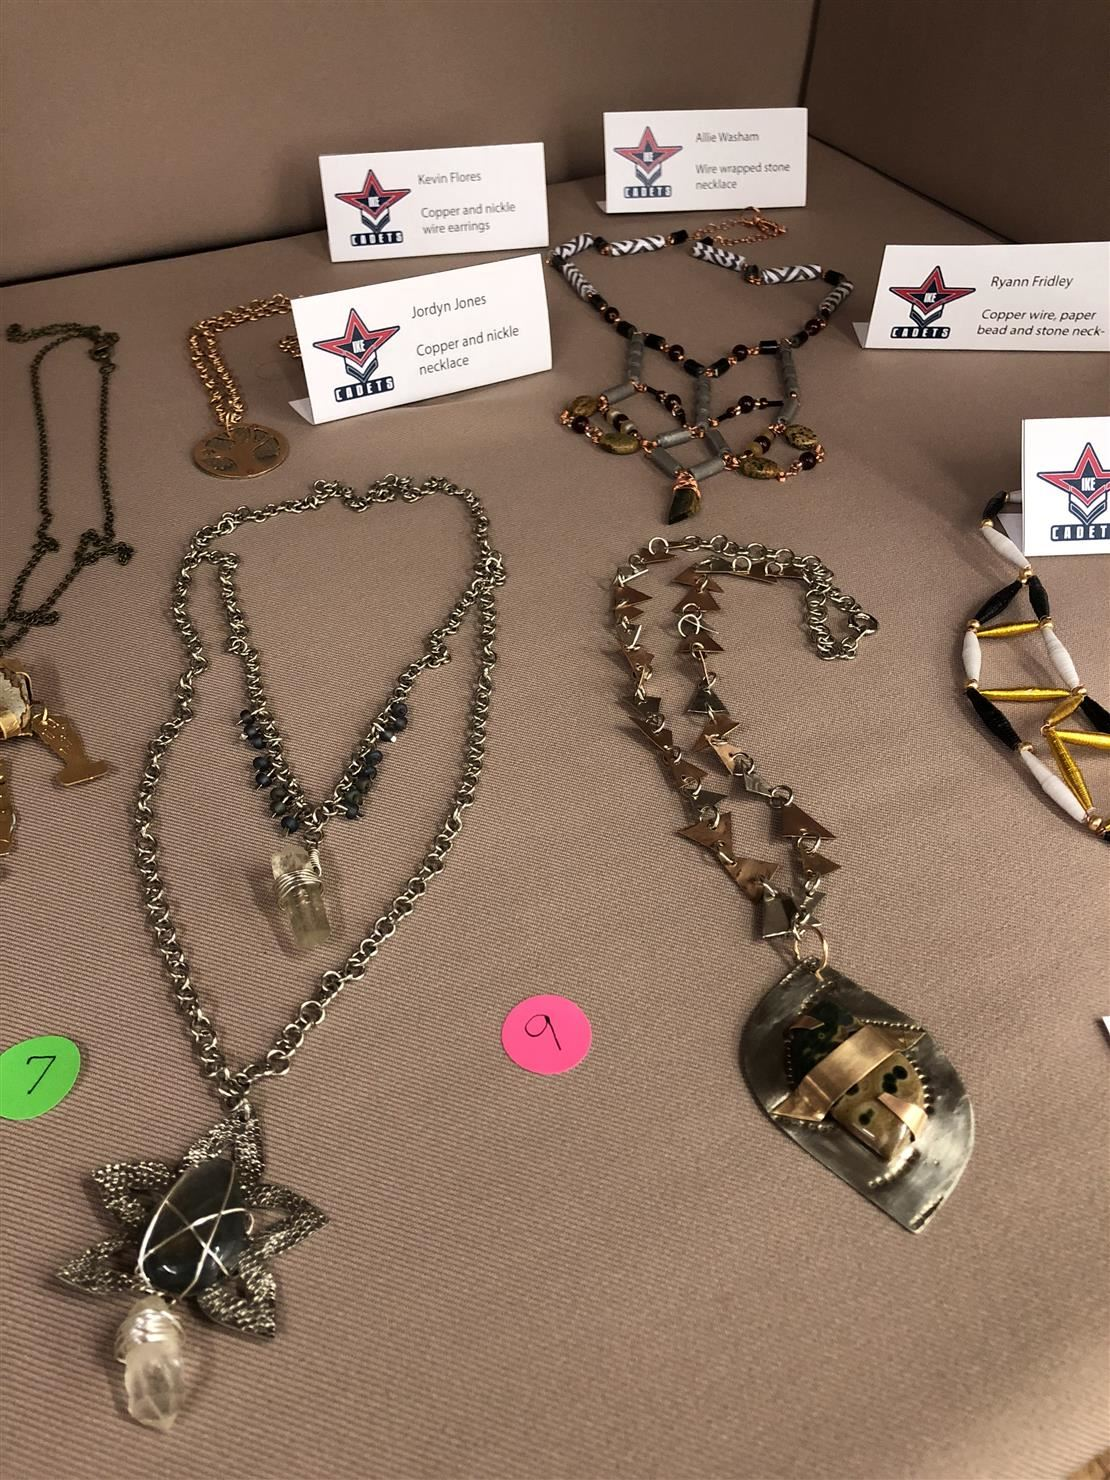 High School Jewelry Competition